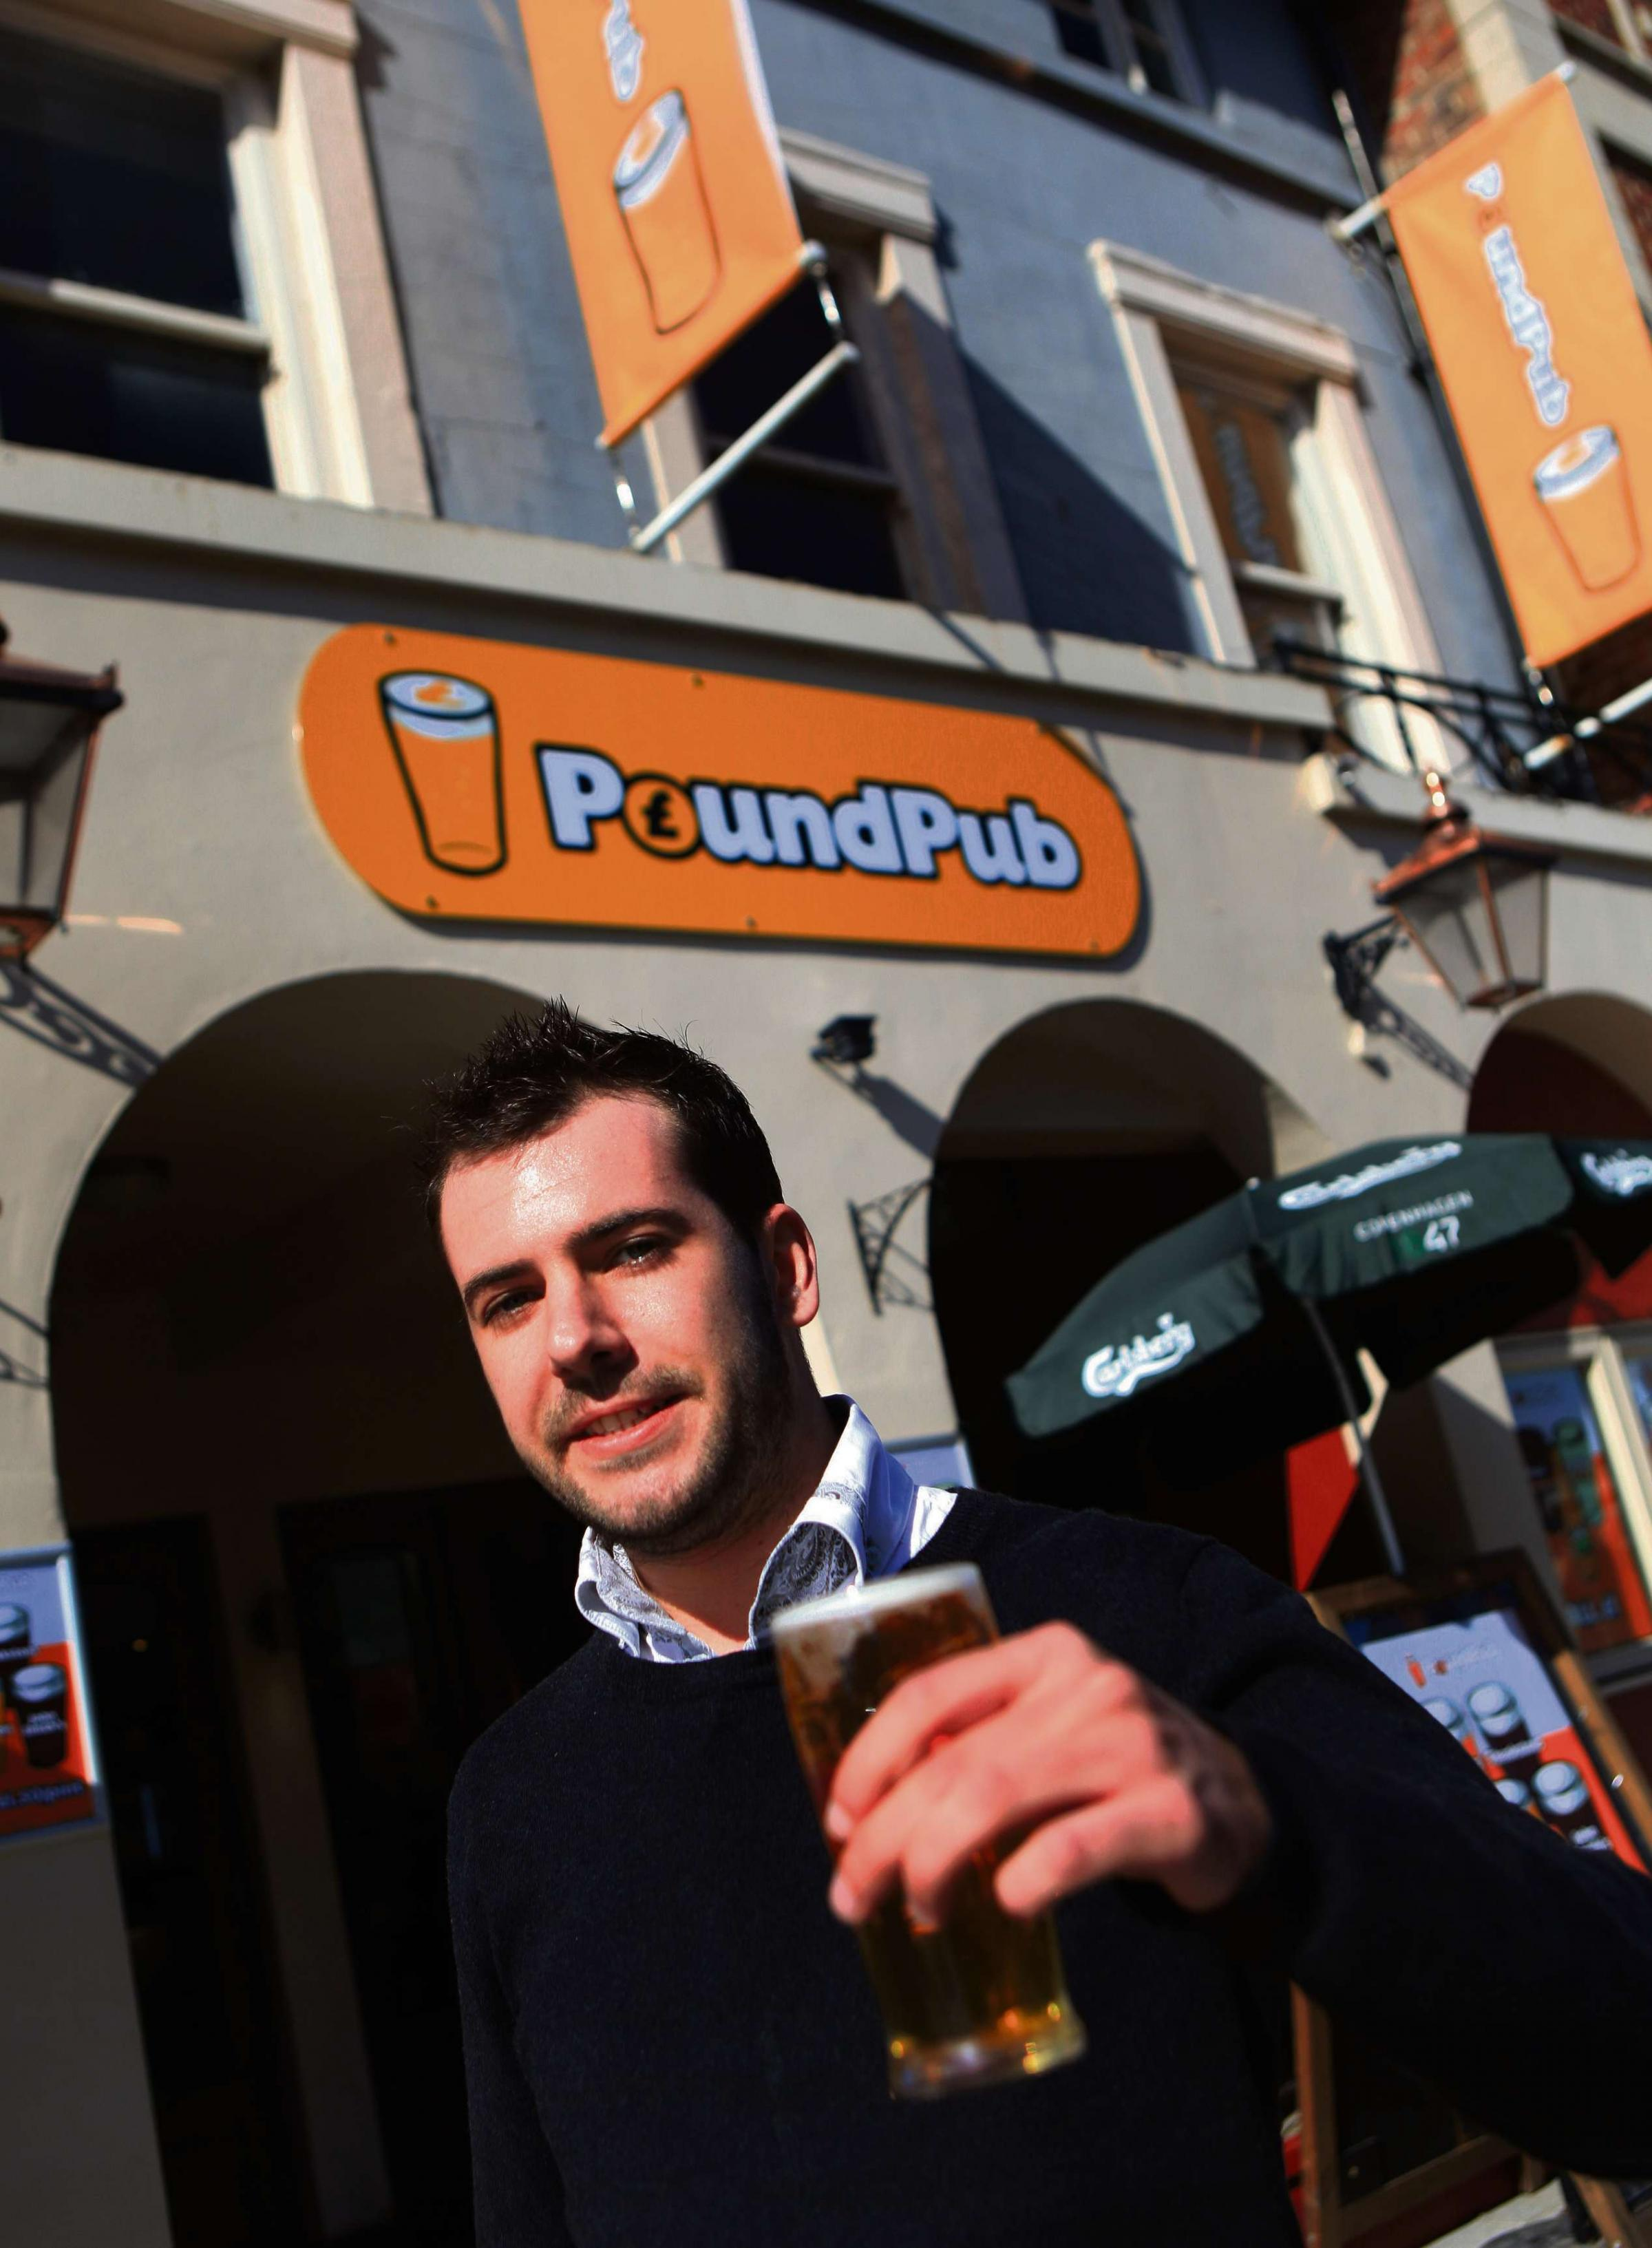 Police withdraw objection to PoundPub's earlier opening times